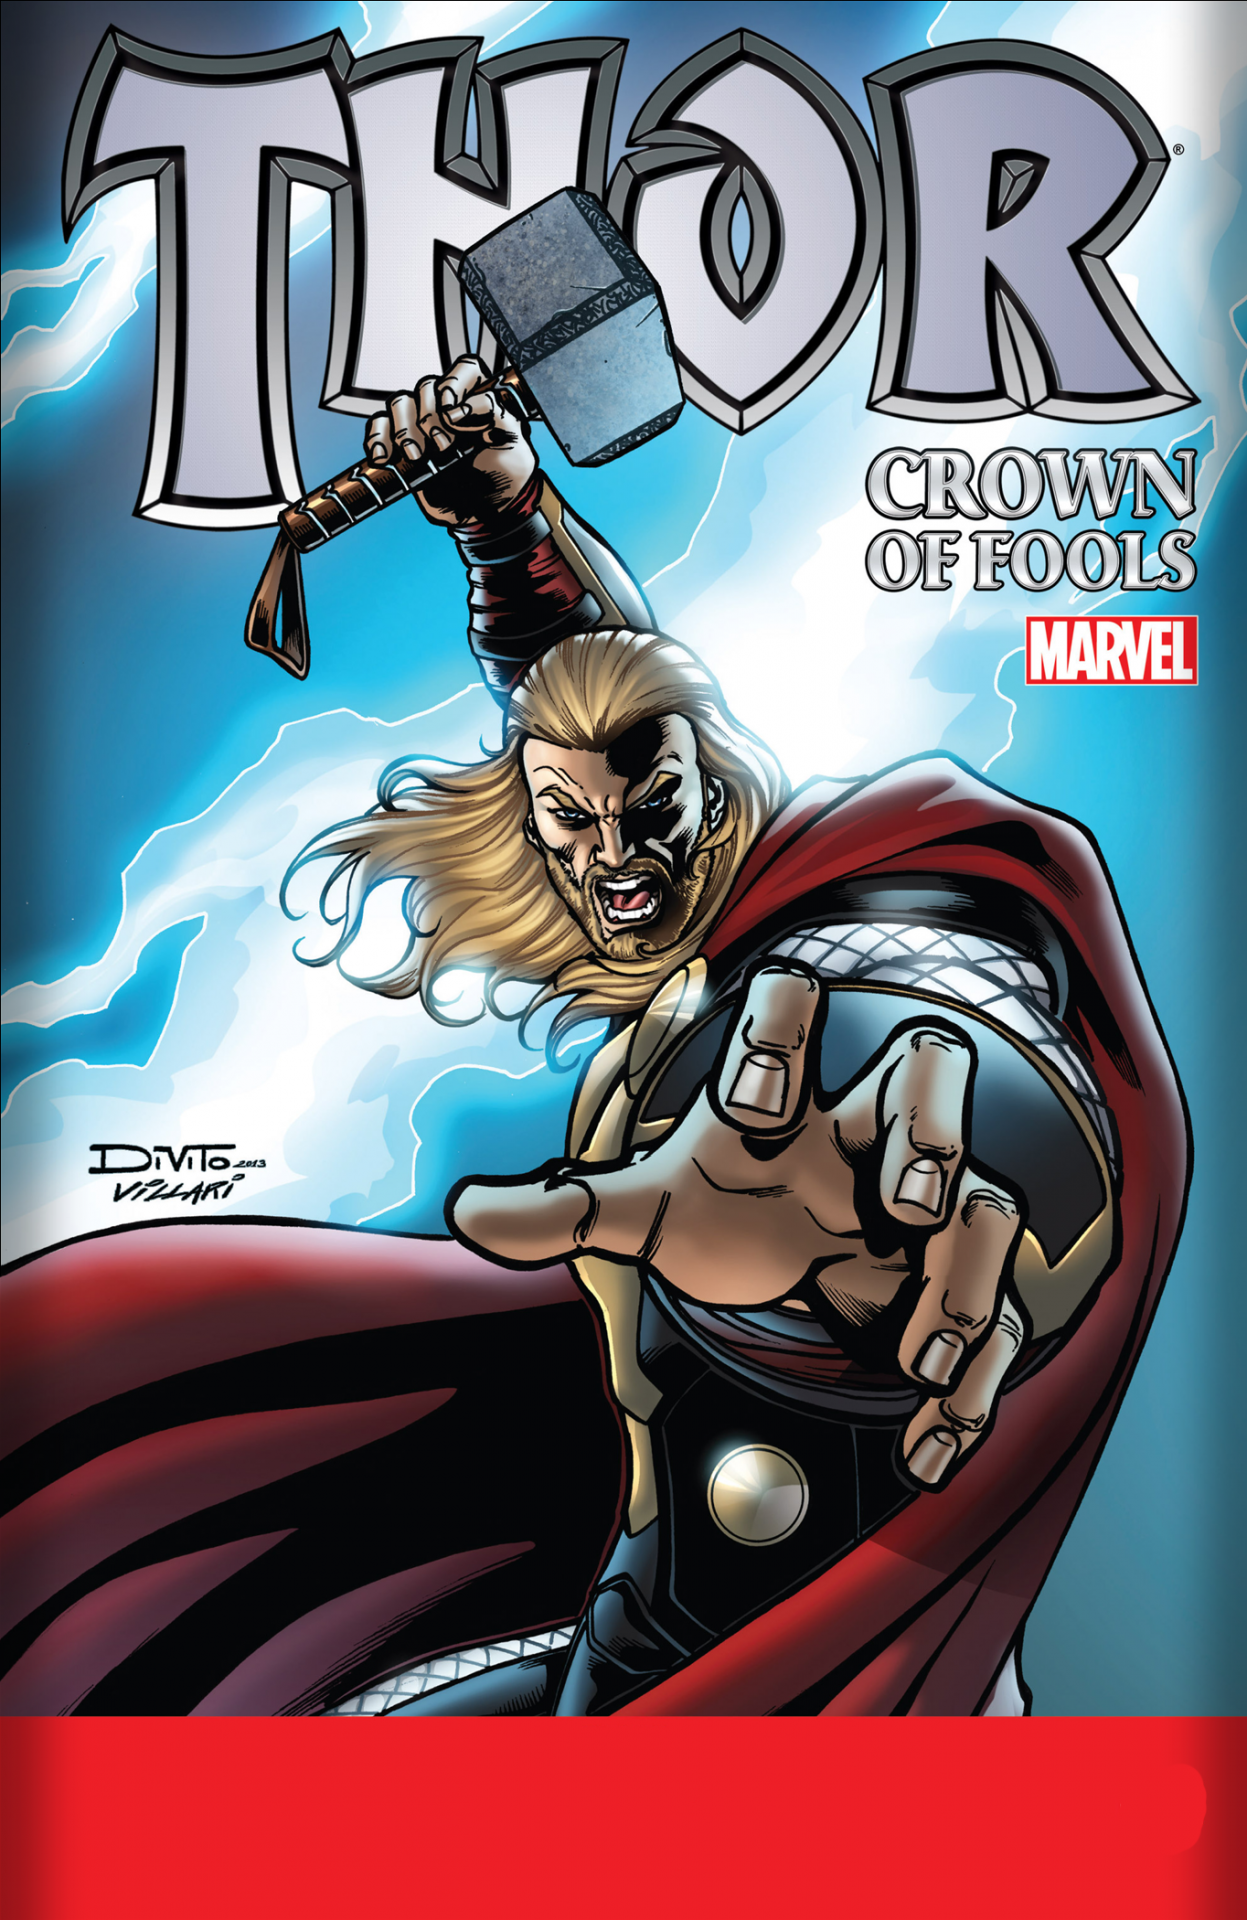 Thor crown of fools